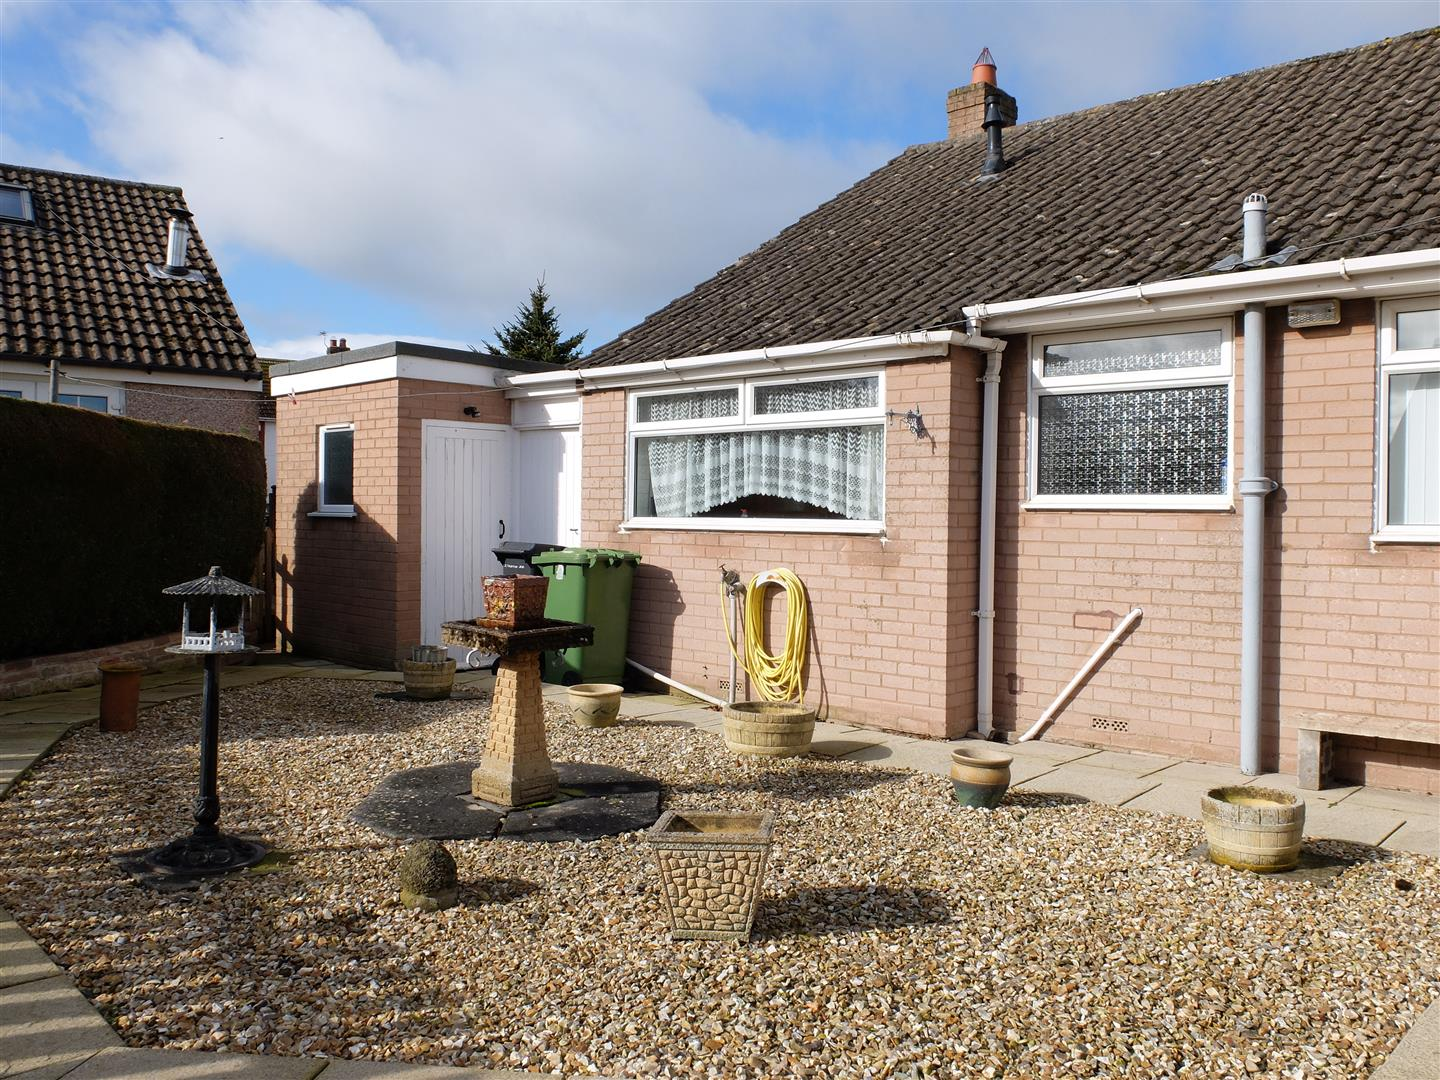 2 Farbrow Road Carlisle 2 Bedrooms Bungalow - Semi Detached On Sale 150,000